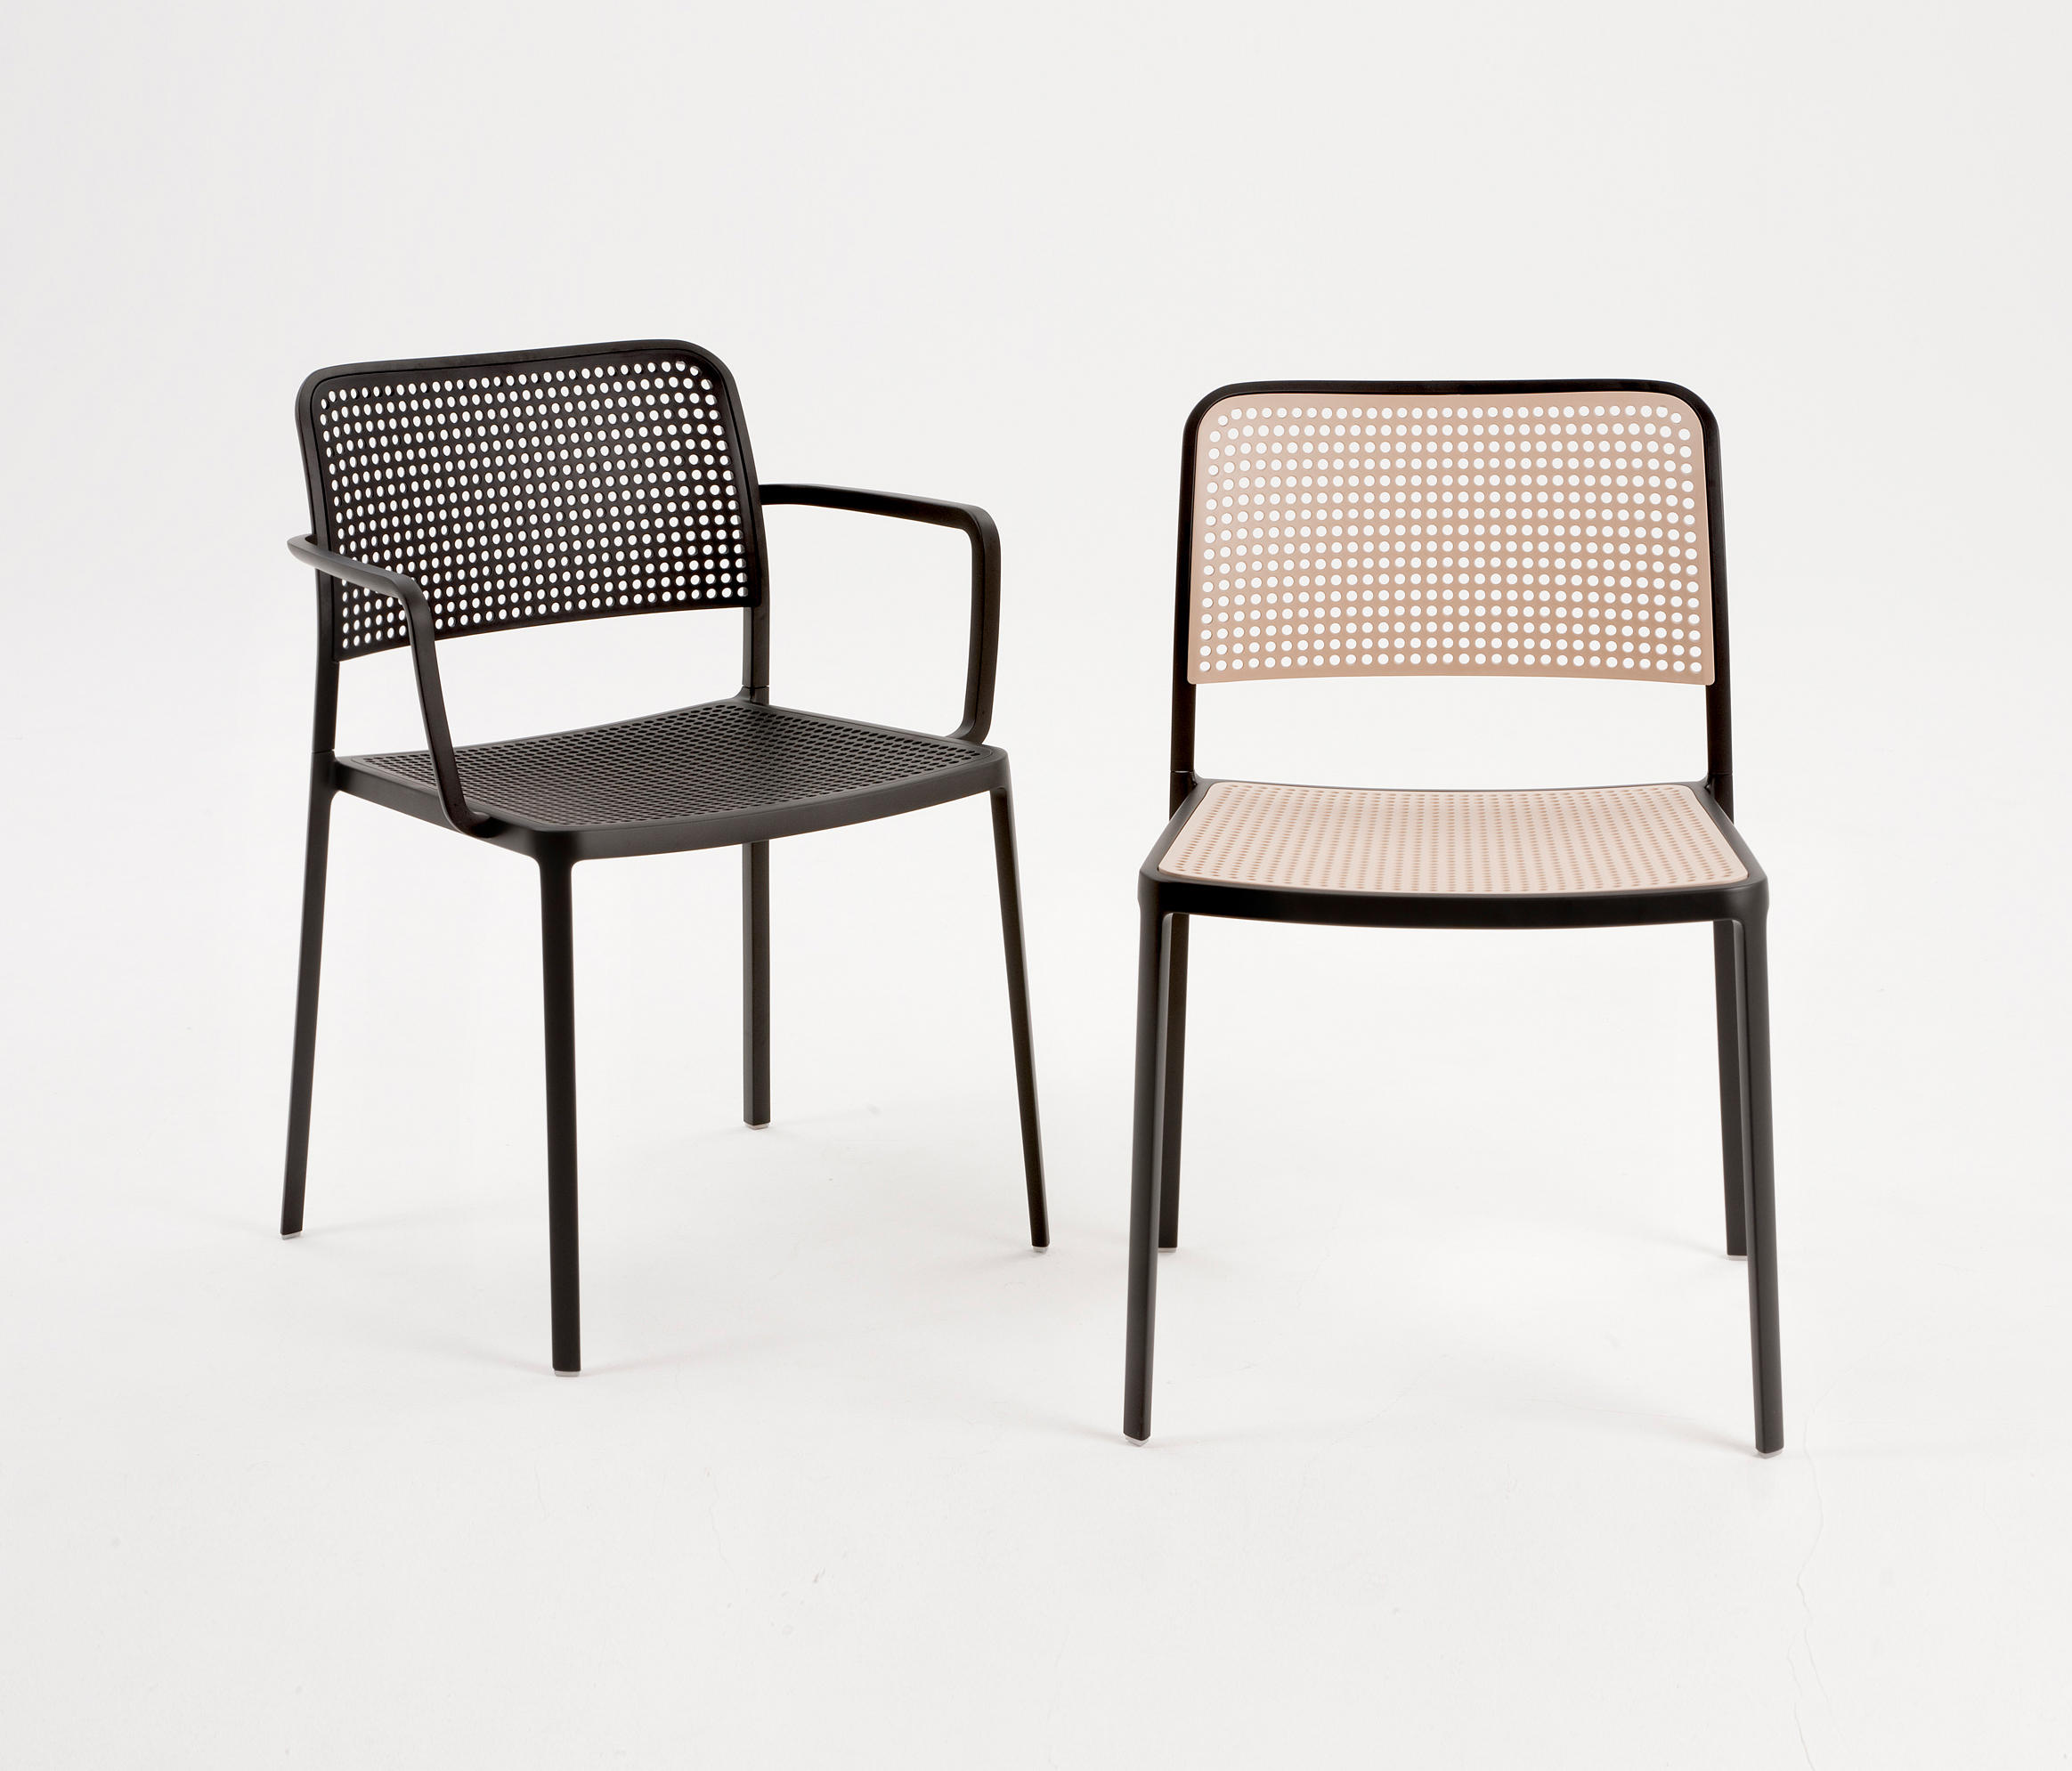 AUDREY Multipurpose chairs from Kartell